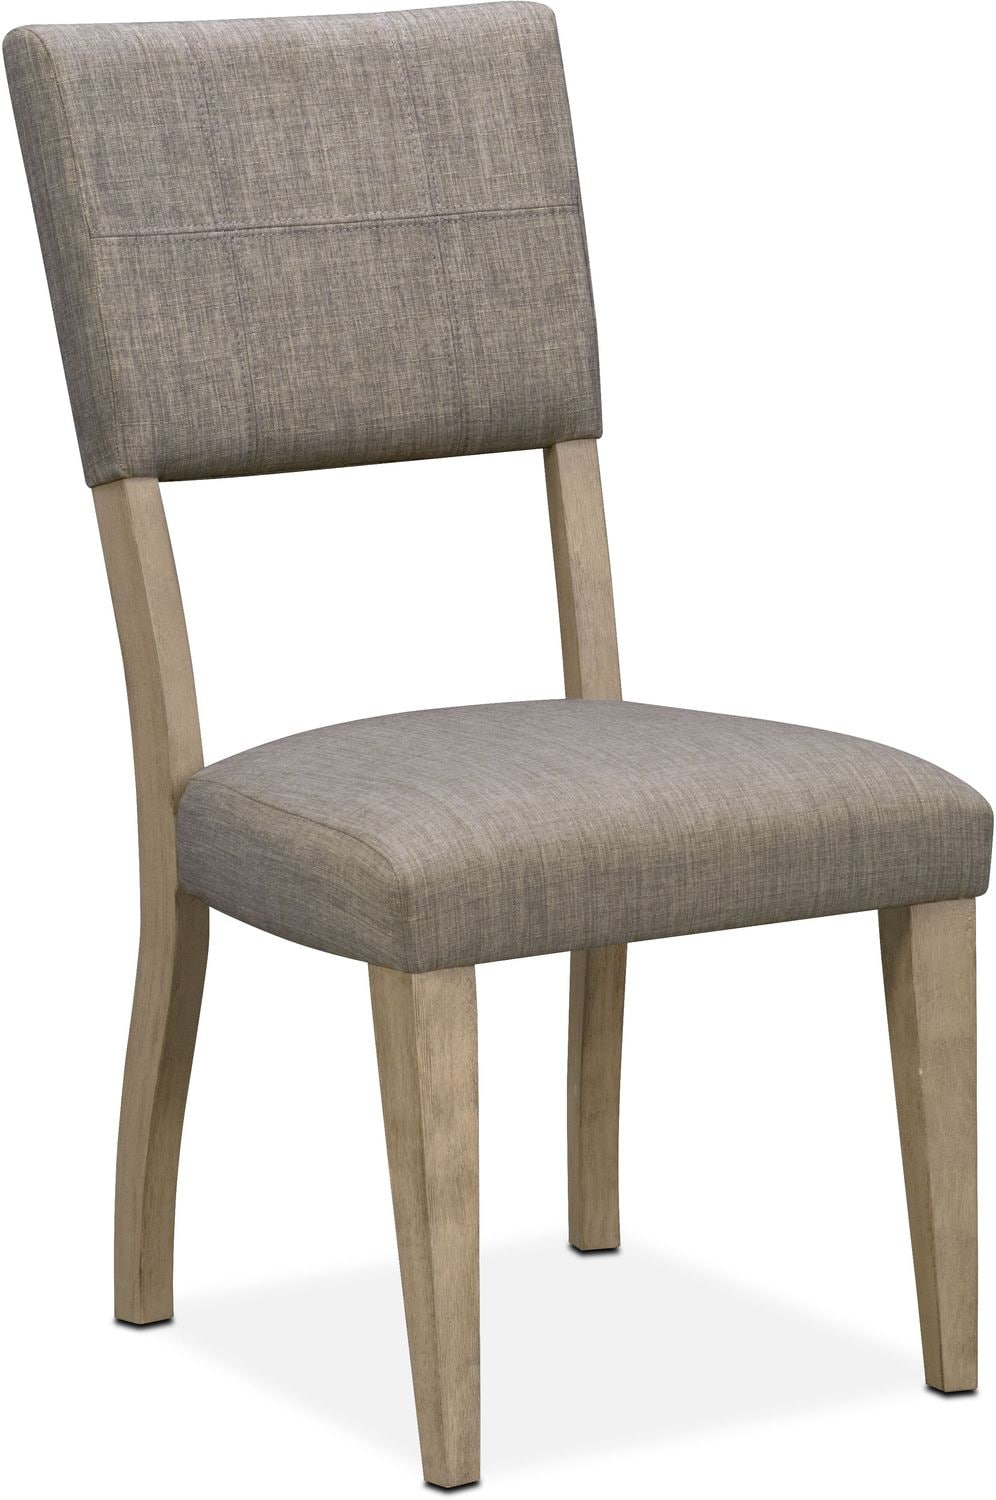 Attrayant Tribeca Upholstered Side Chair   Gray